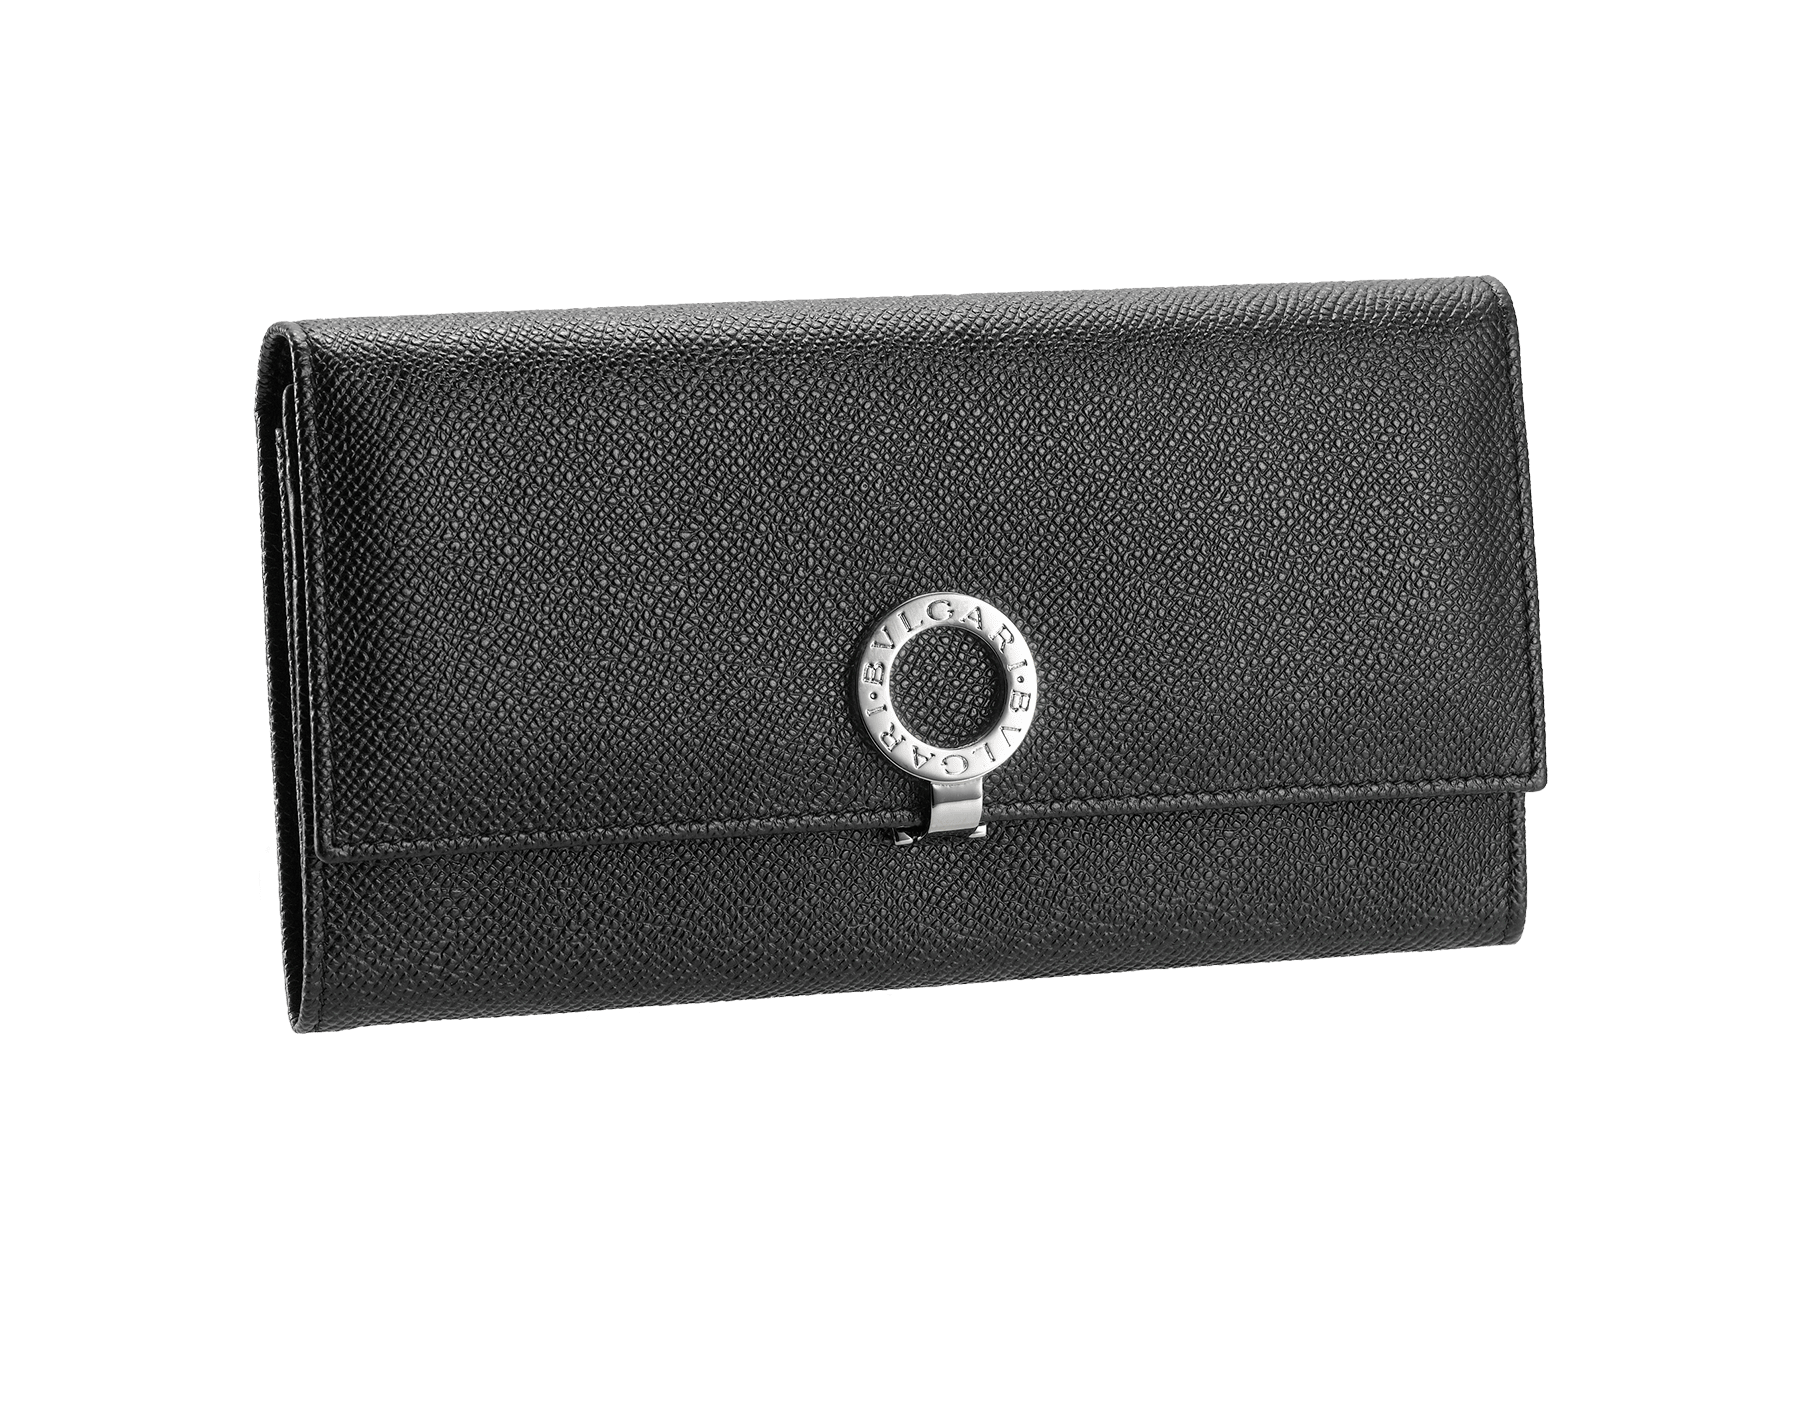 Woman wallet pochette 2 gussets & 10CC with clip,Grain leather black/Palladium, Lining 100% Leather royal 30414 image 1